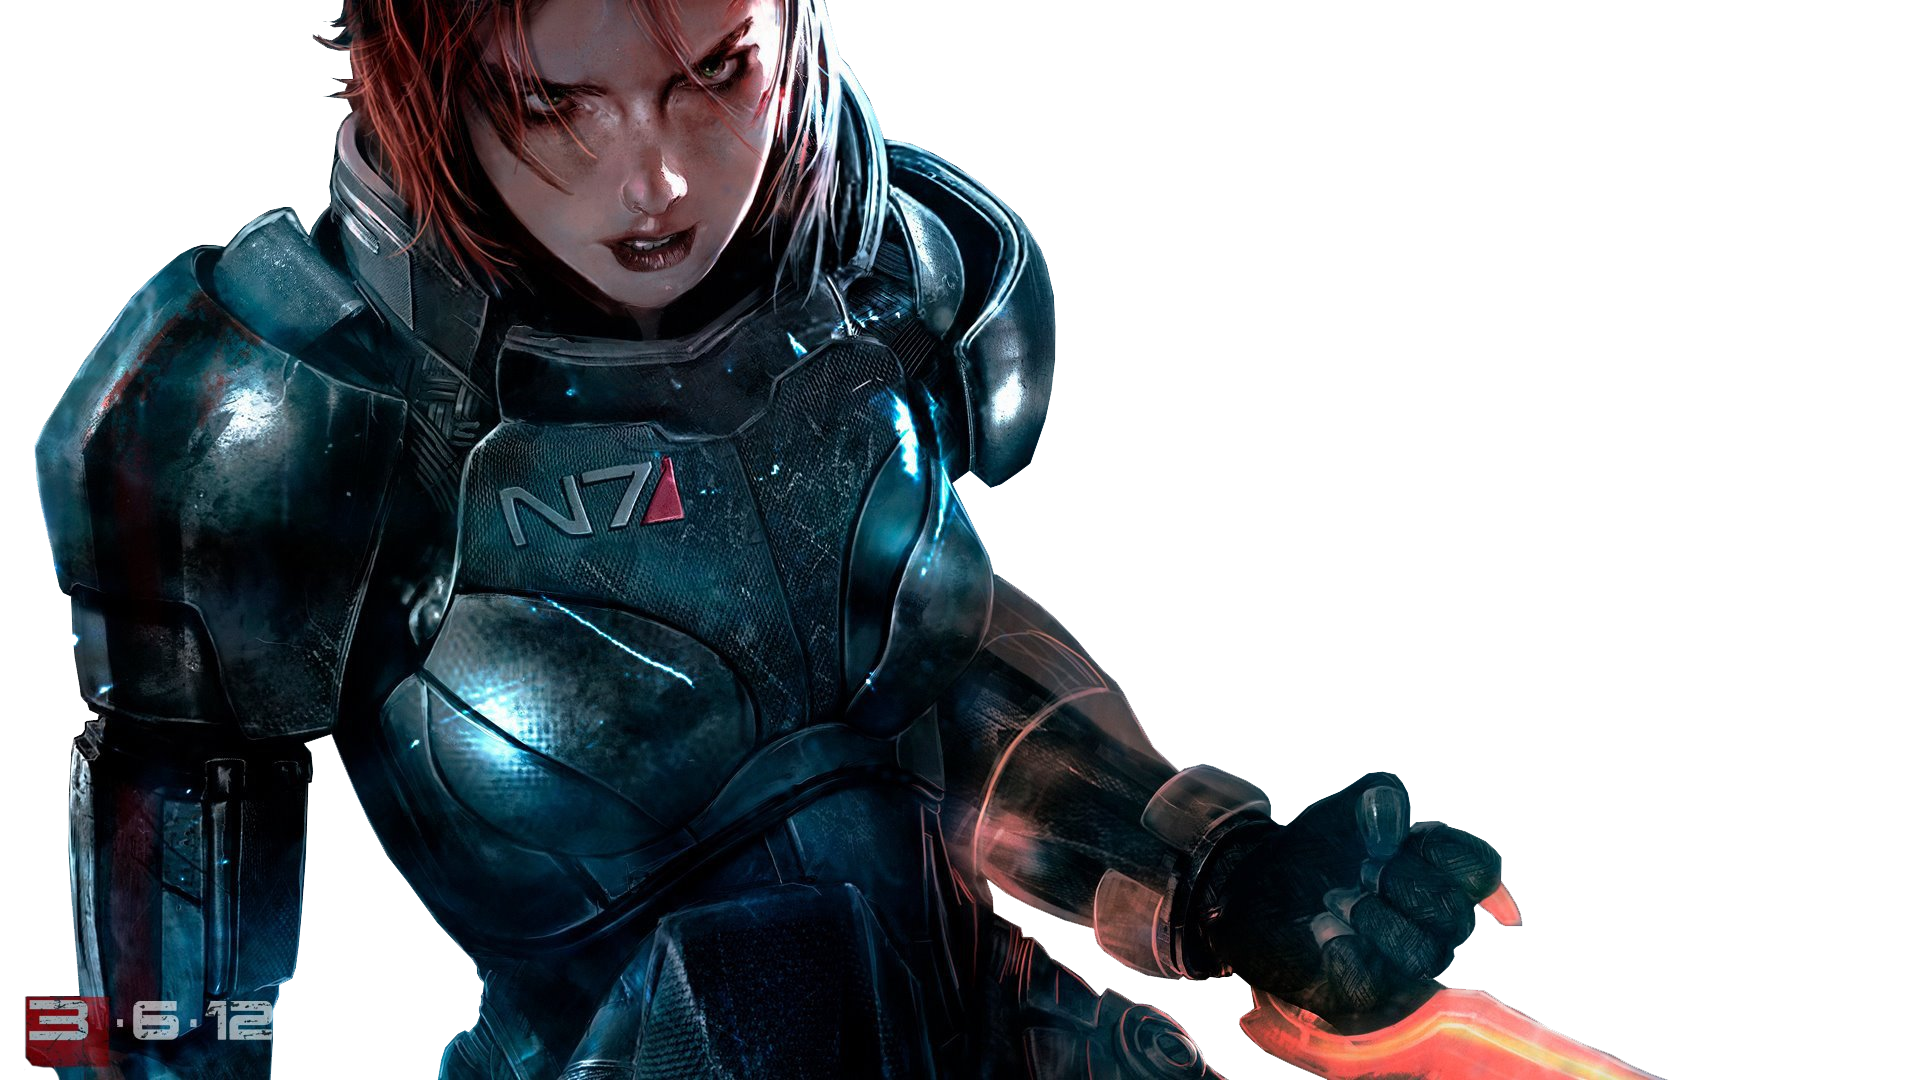 Video Game - Mass Effect 3 Commander Shepard Wallpaper - Mass Effect PNG